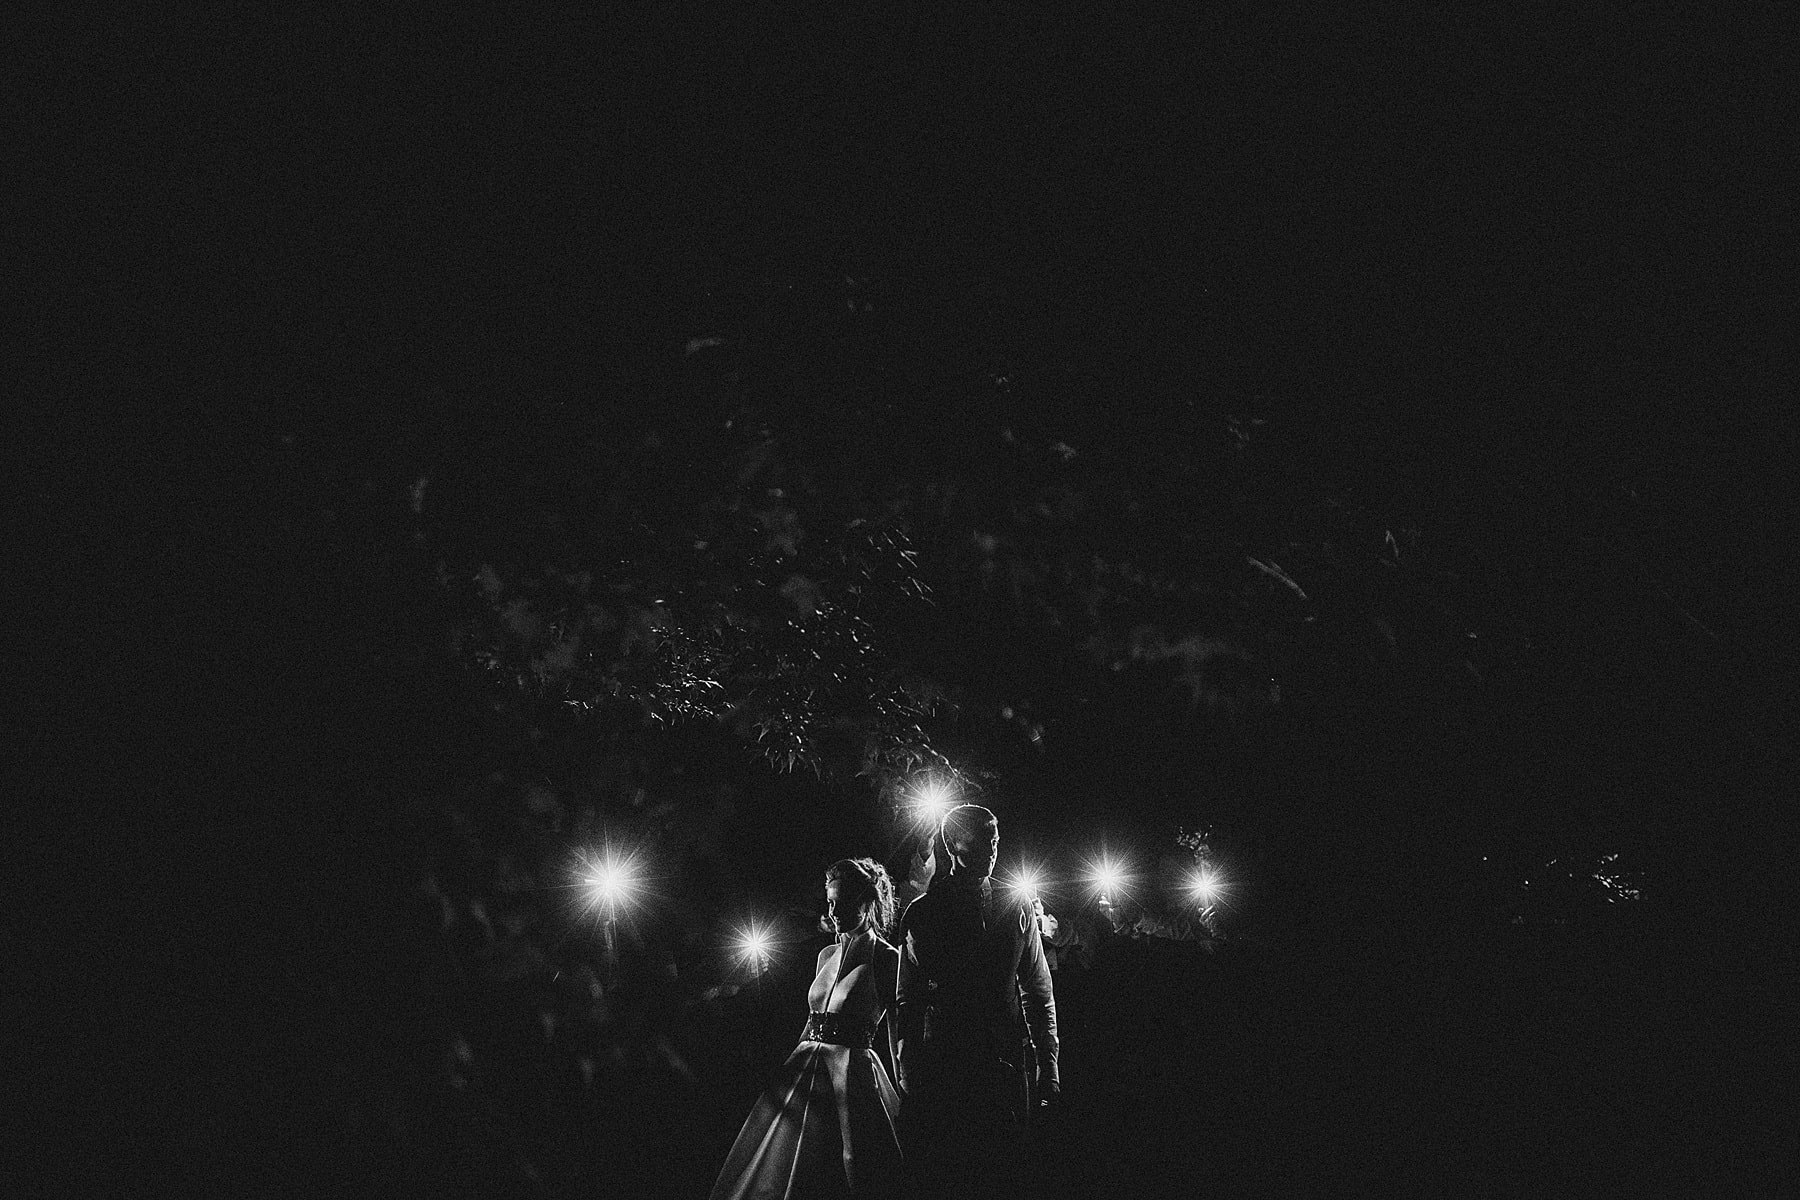 ireland wedding photographer,langton house hotel wedding,dalduff farm wedding,bride trainers,tinkakilly house wedding,kilruddery house outdoor wedding,humanist ceremony,crieff hotel,night time wedding photography,borris house wedding,ballyduggan mill wedding,